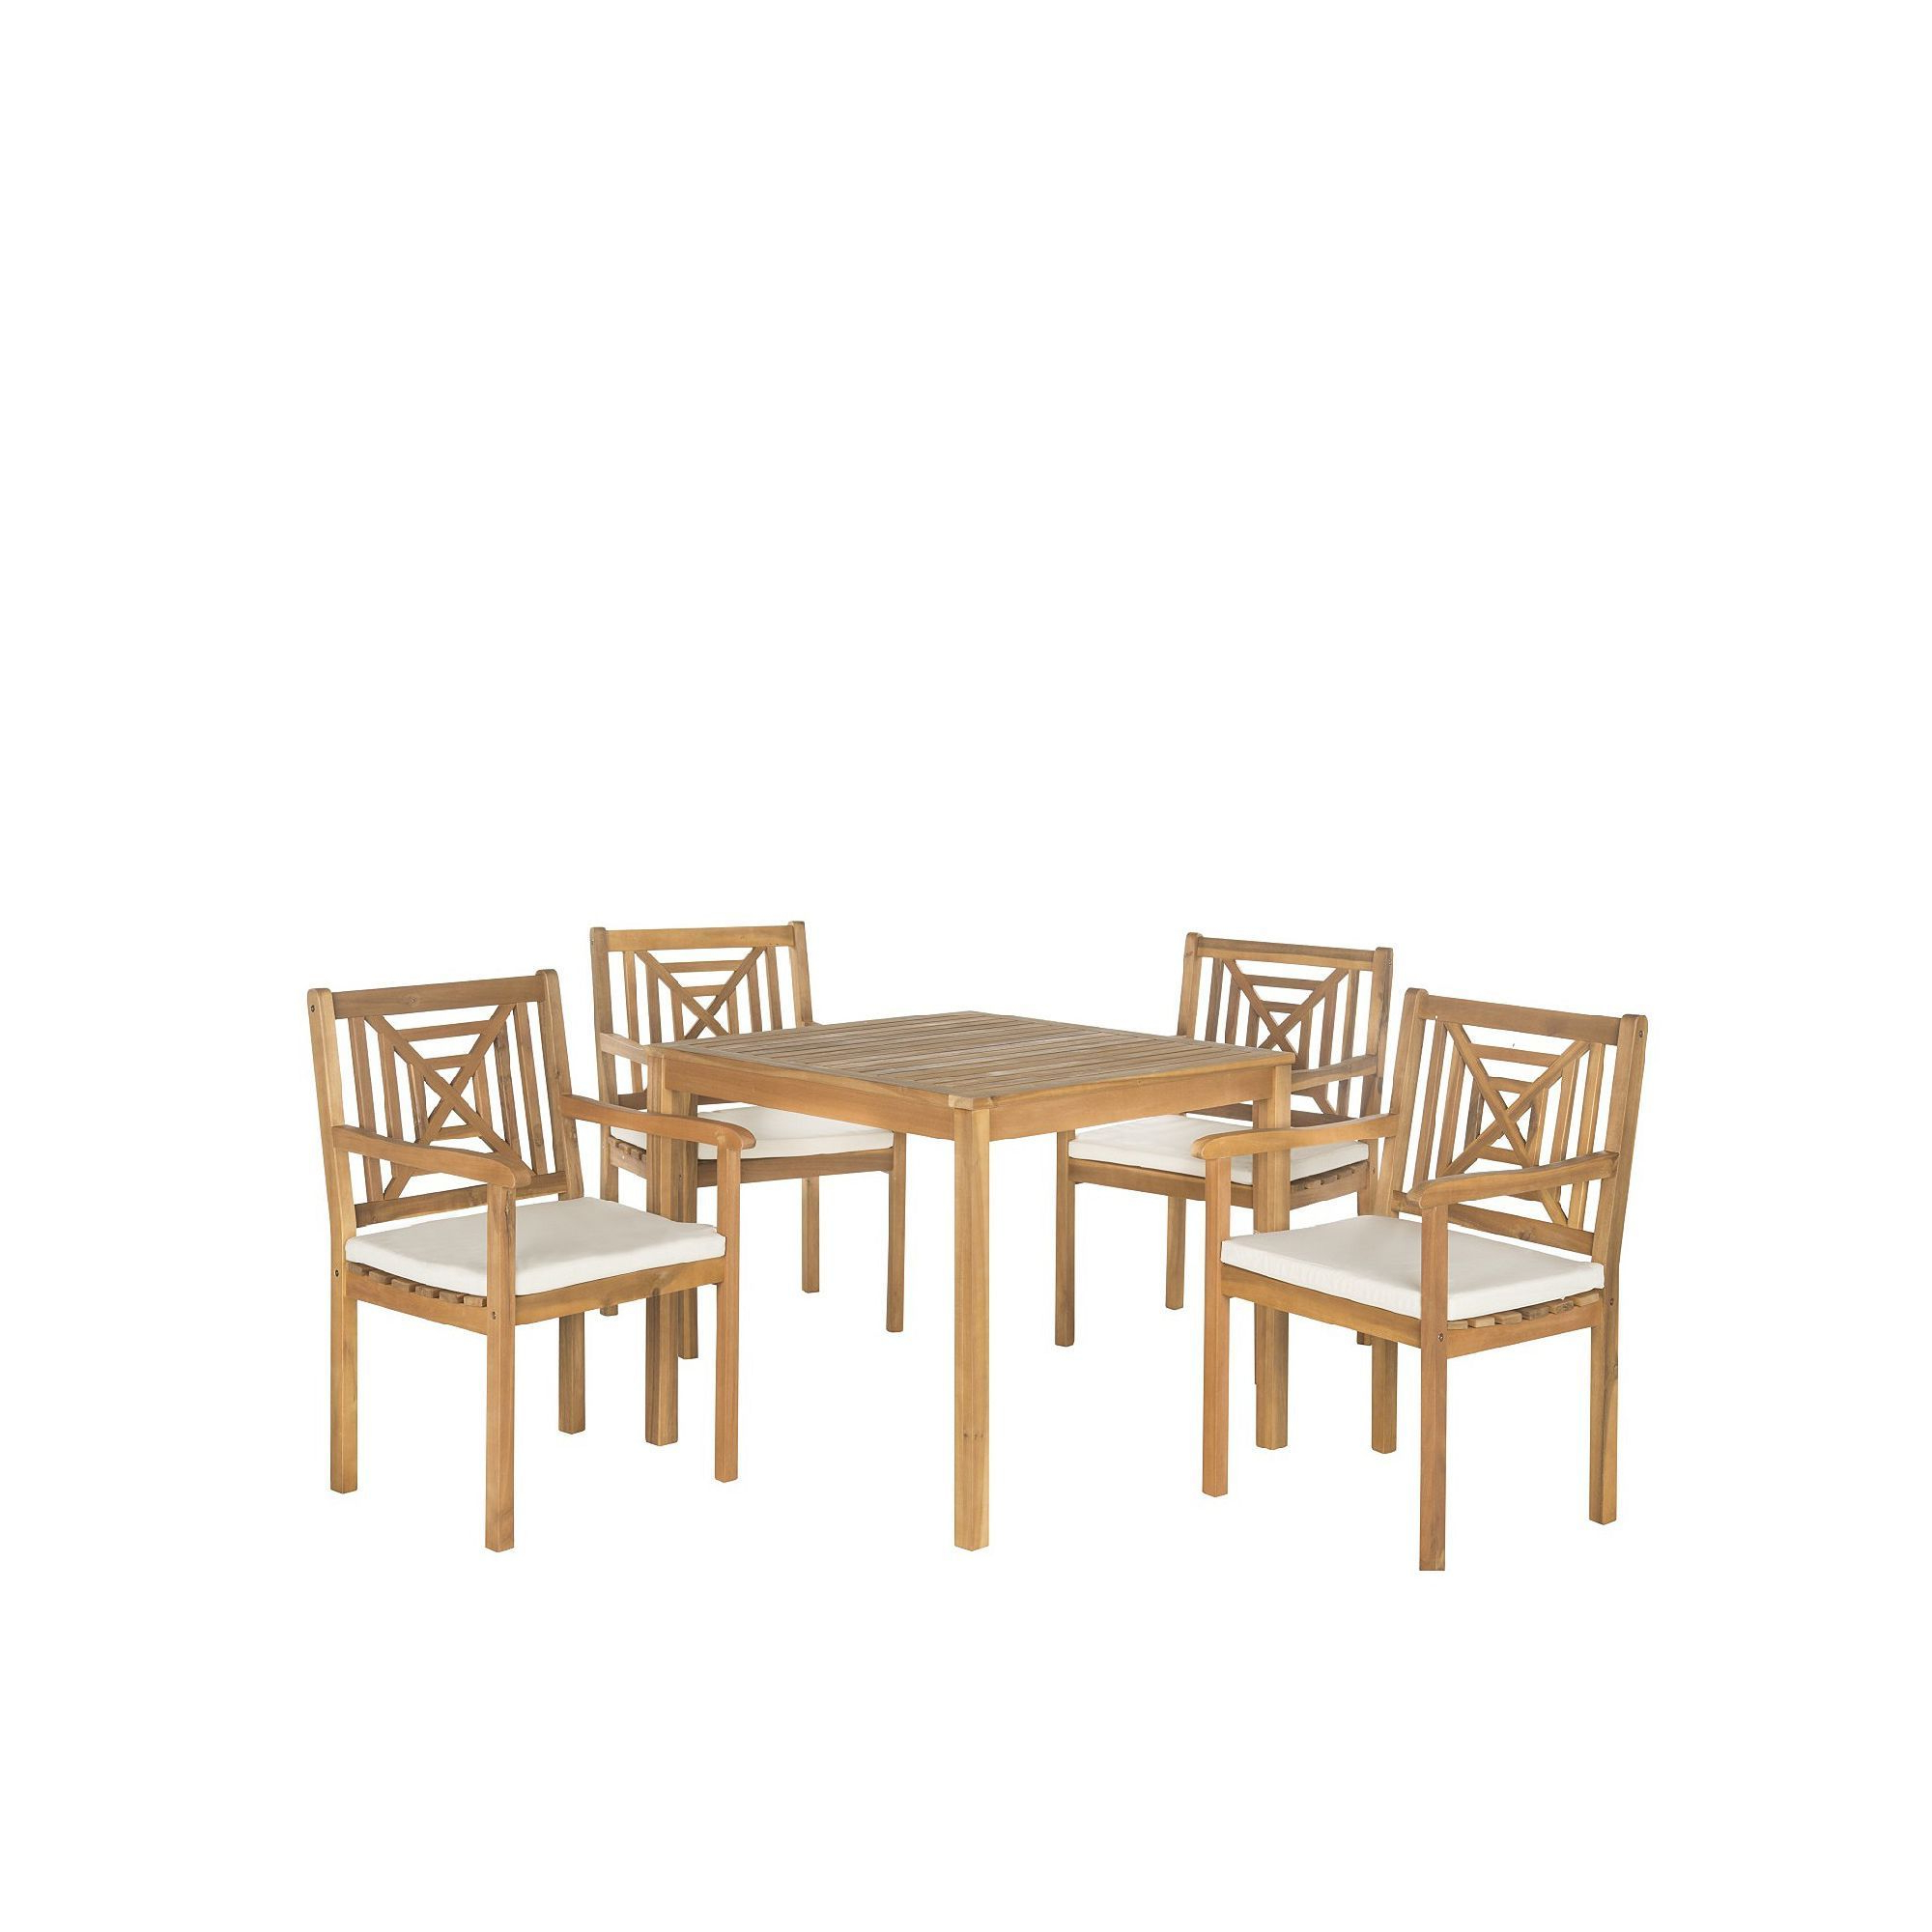 Safavieh Del Mar Indoor / Outdoor Dining Table & Chair 5 Piece Set Within Well Liked Delmar 5 Piece Dining Sets (View 24 of 25)